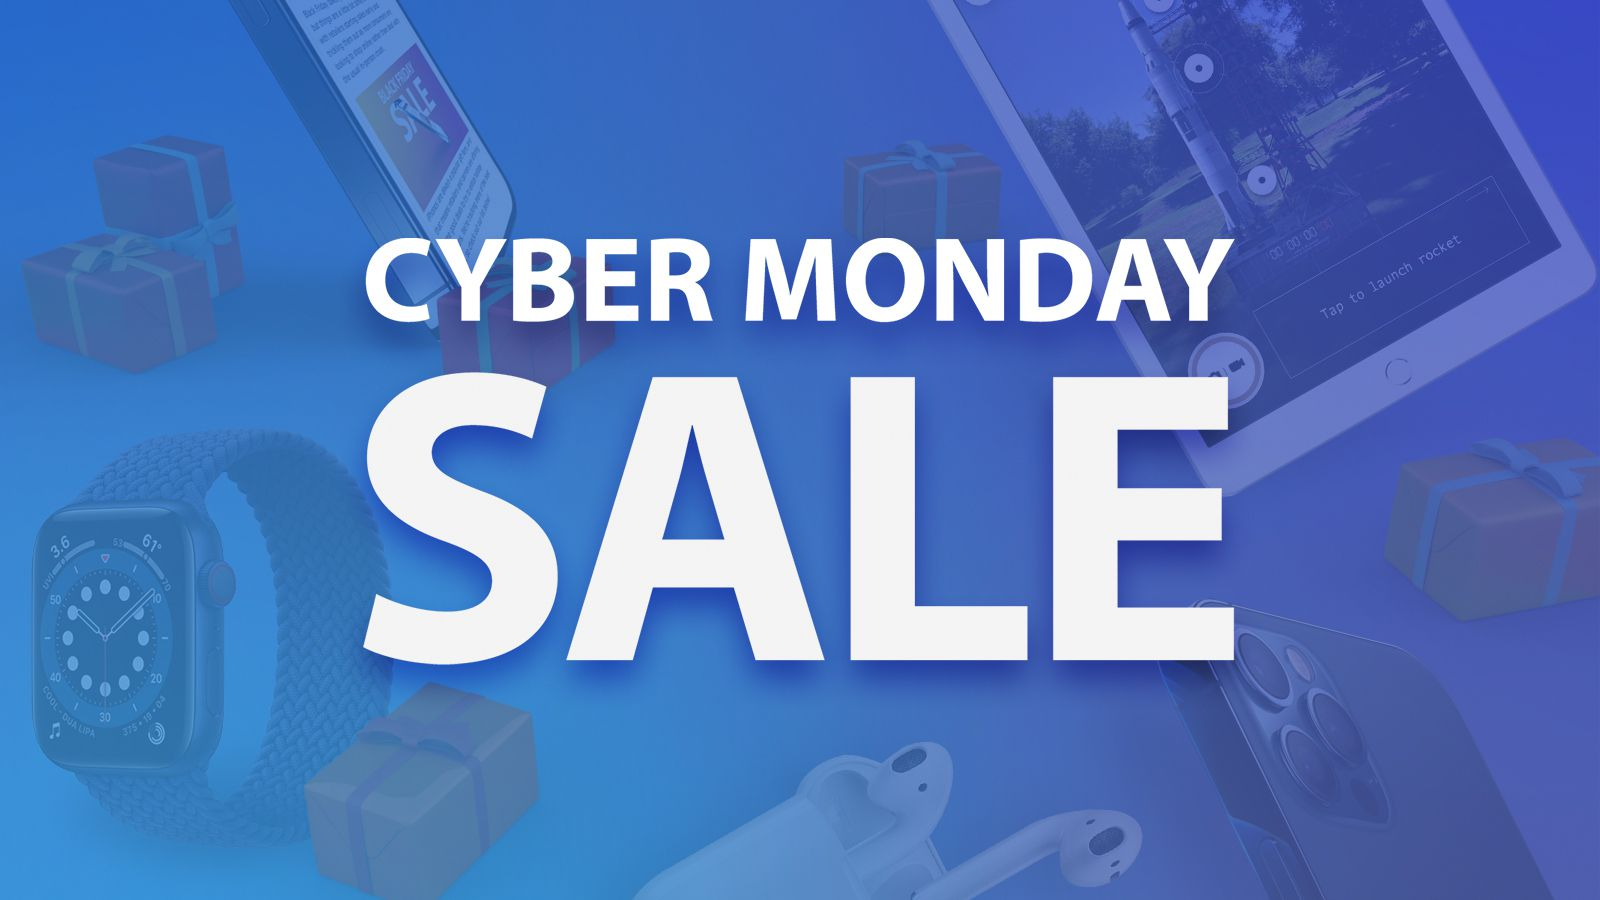 Apple Cyber Monday 2020: Discounts on iPads Macs AirPods and More – Mac Rumors